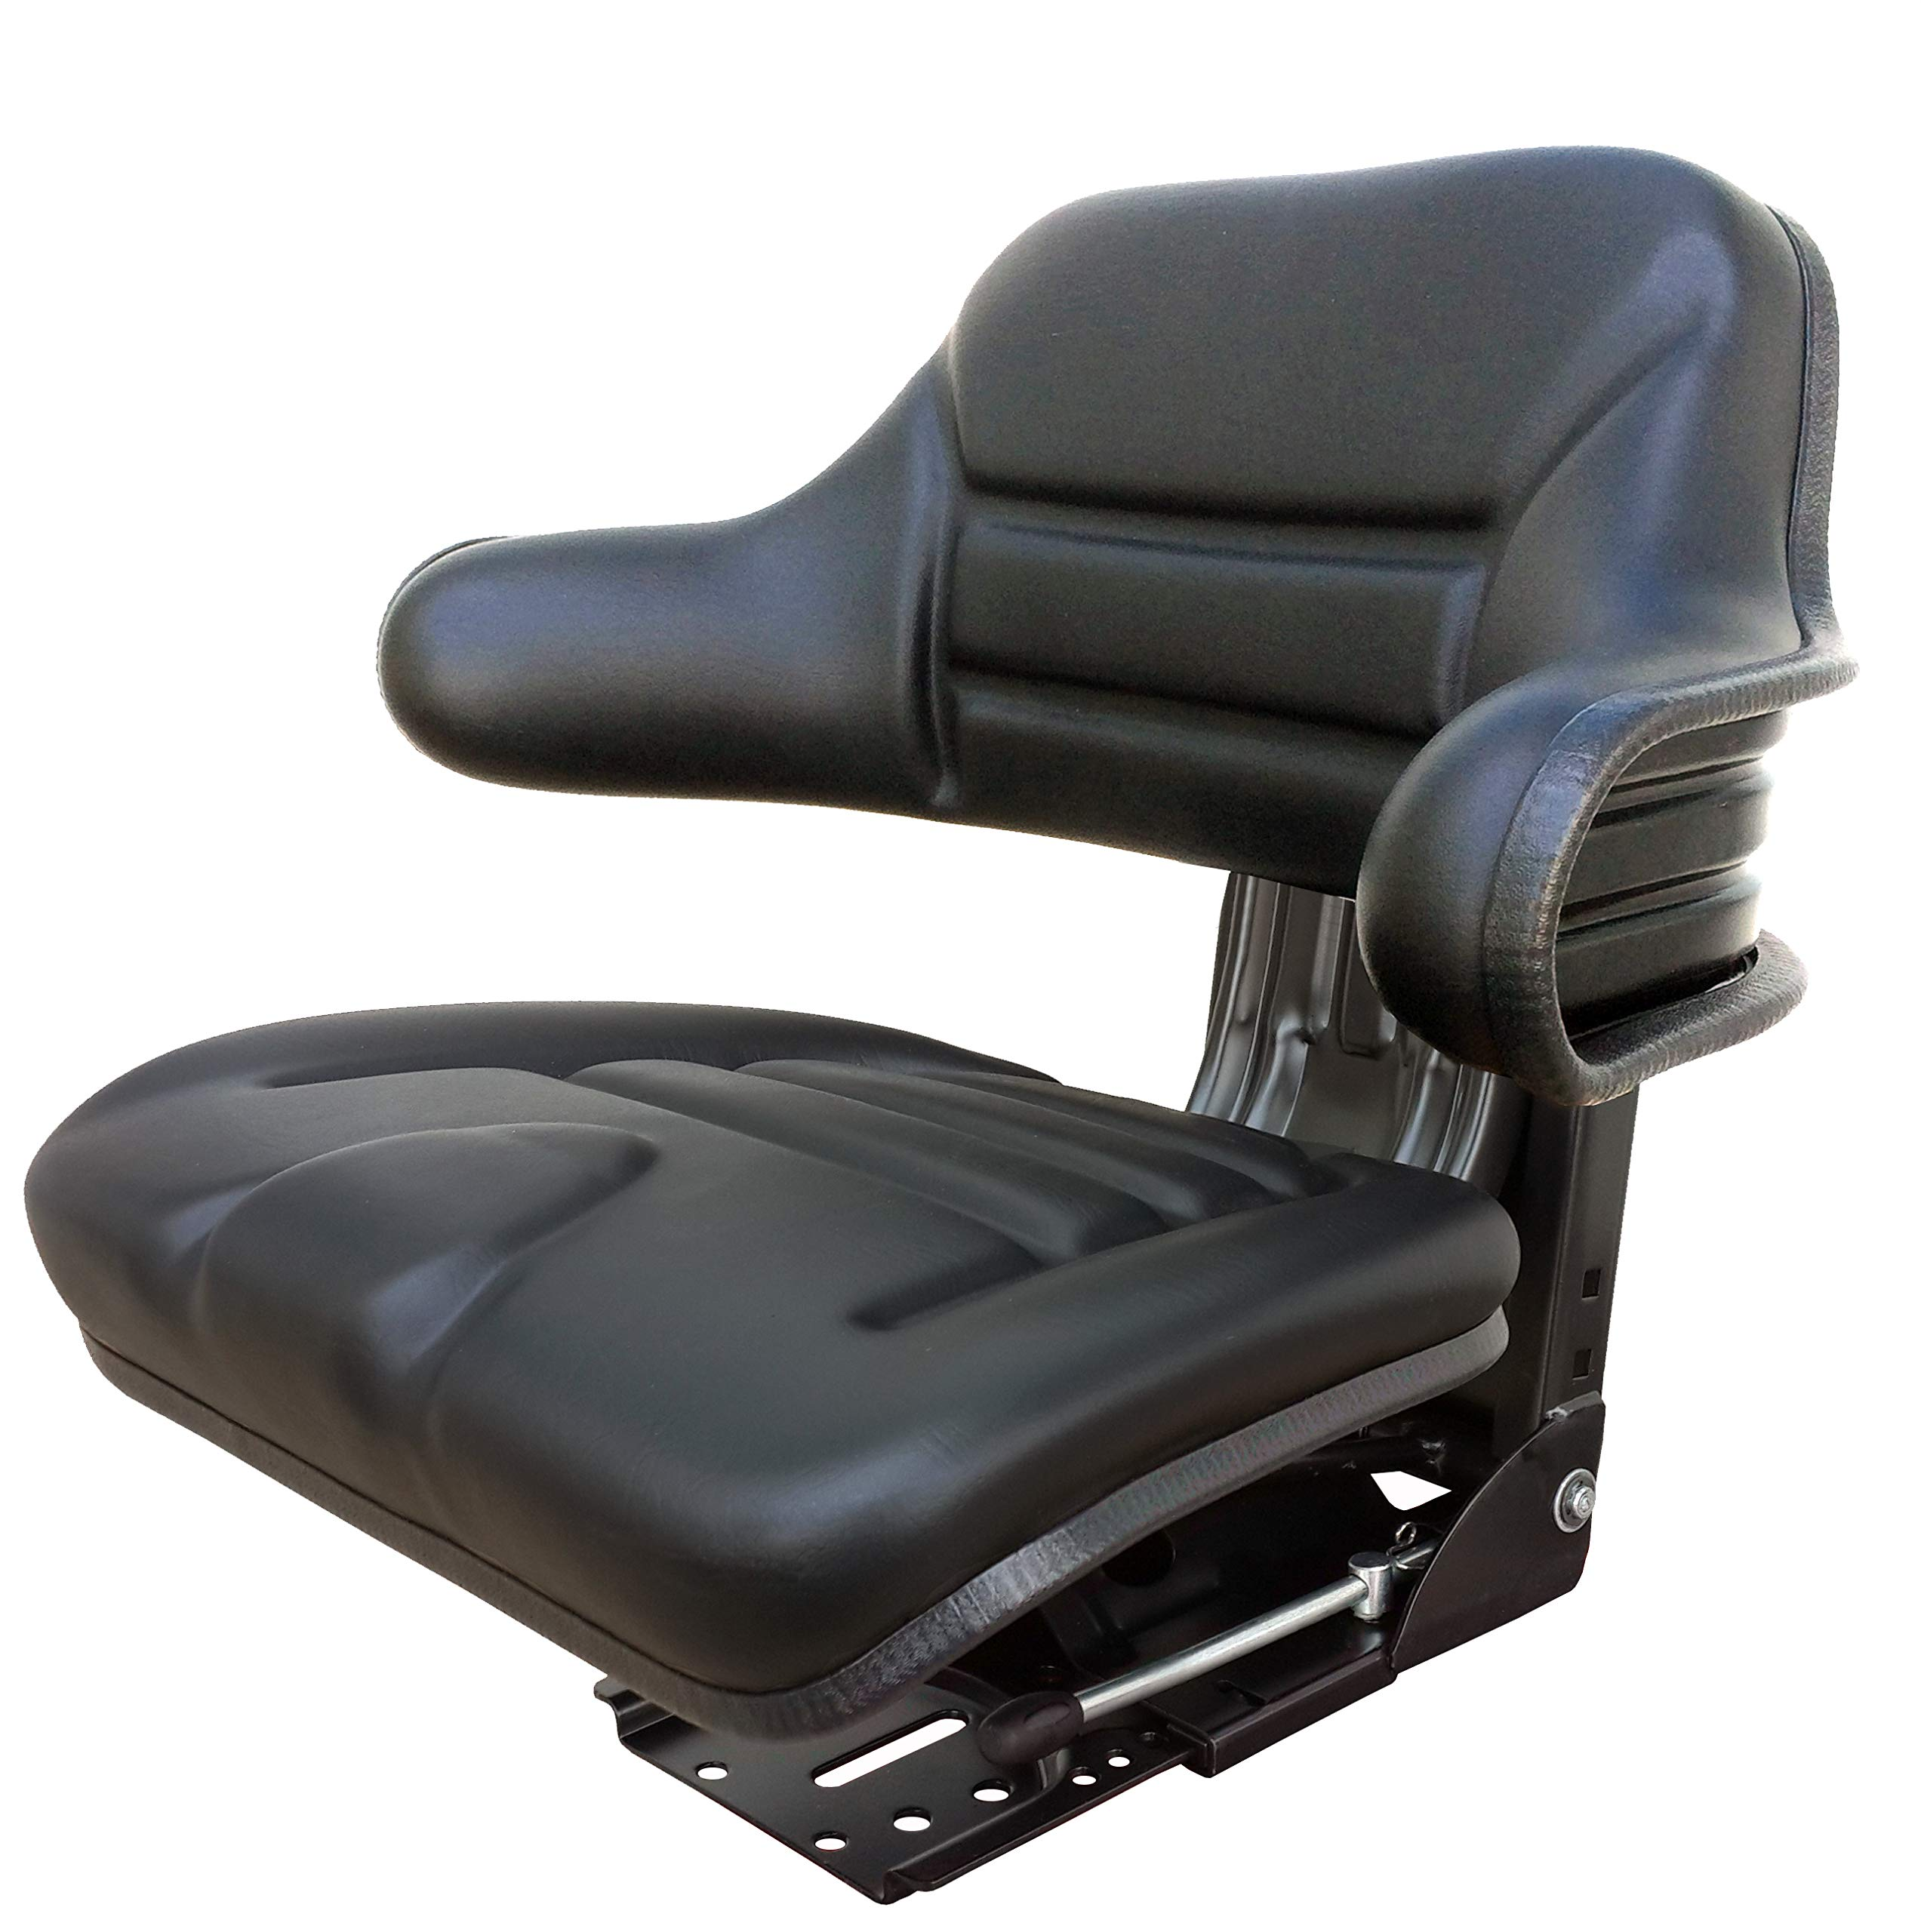 Star ECO 104 Black Universal Suspension Slide Adjustment Tractor Seat (Replacement for Several)